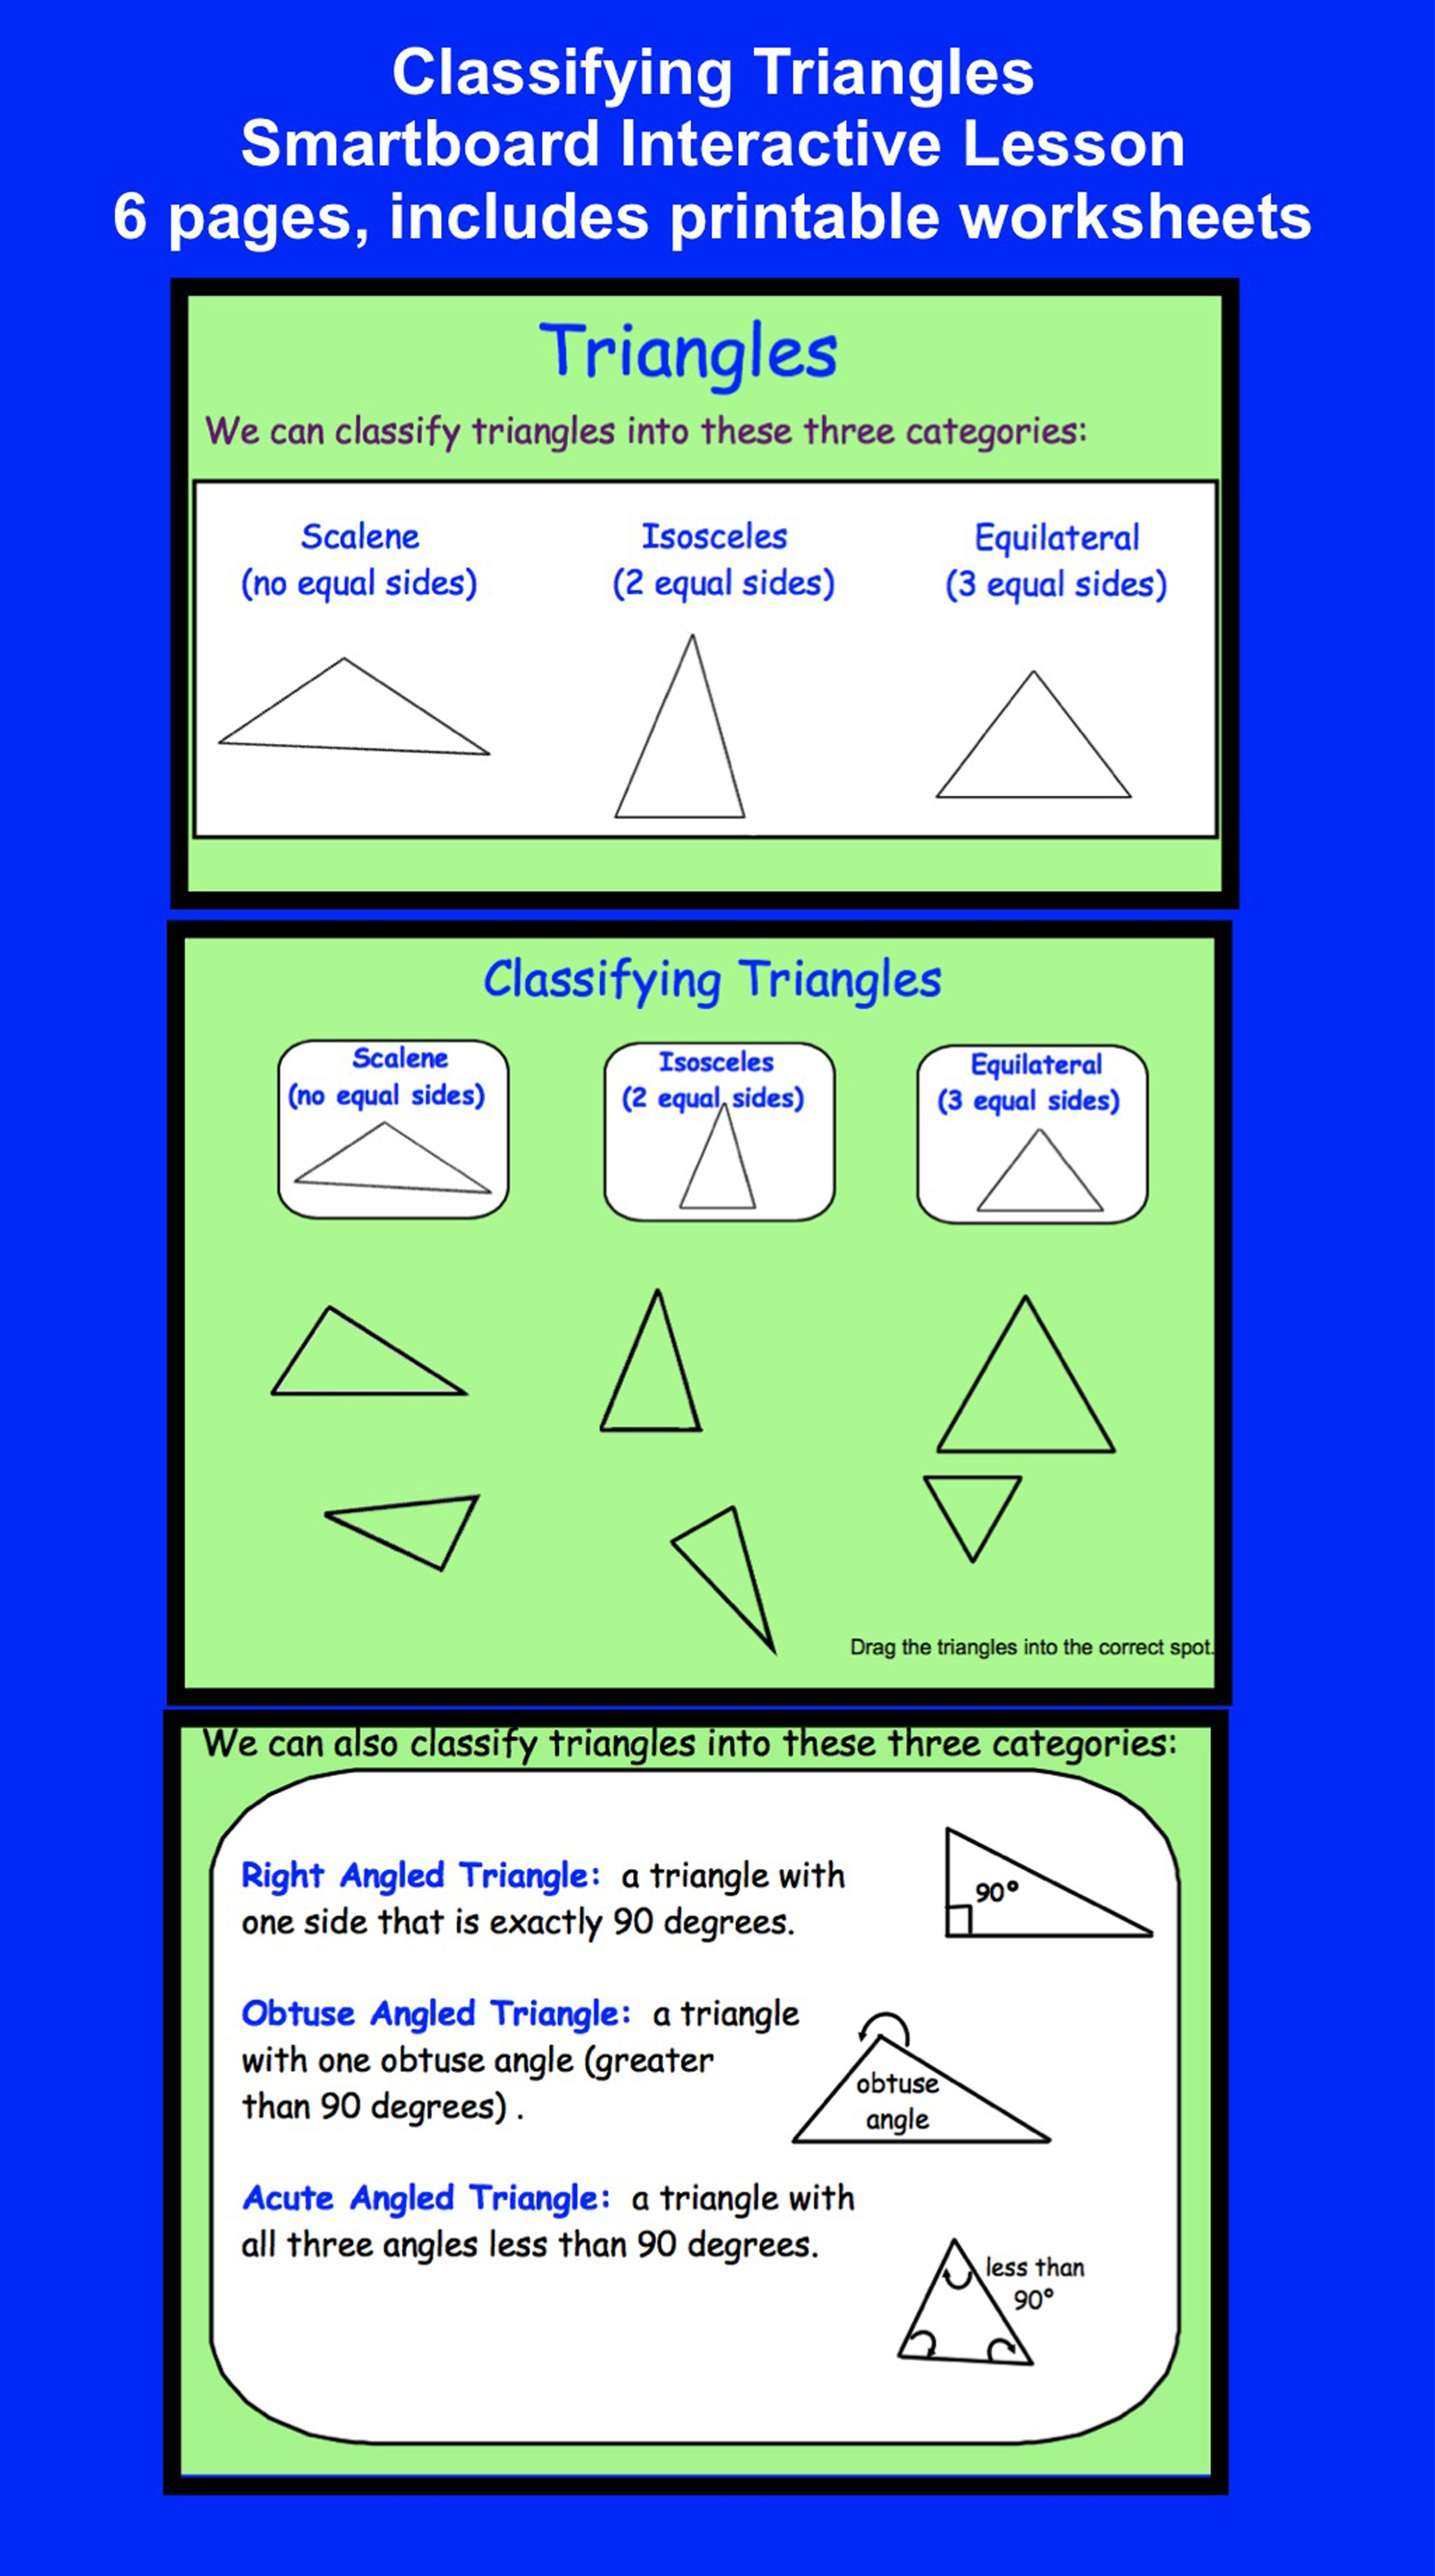 Smartboard Classifying Triangles (Interactive